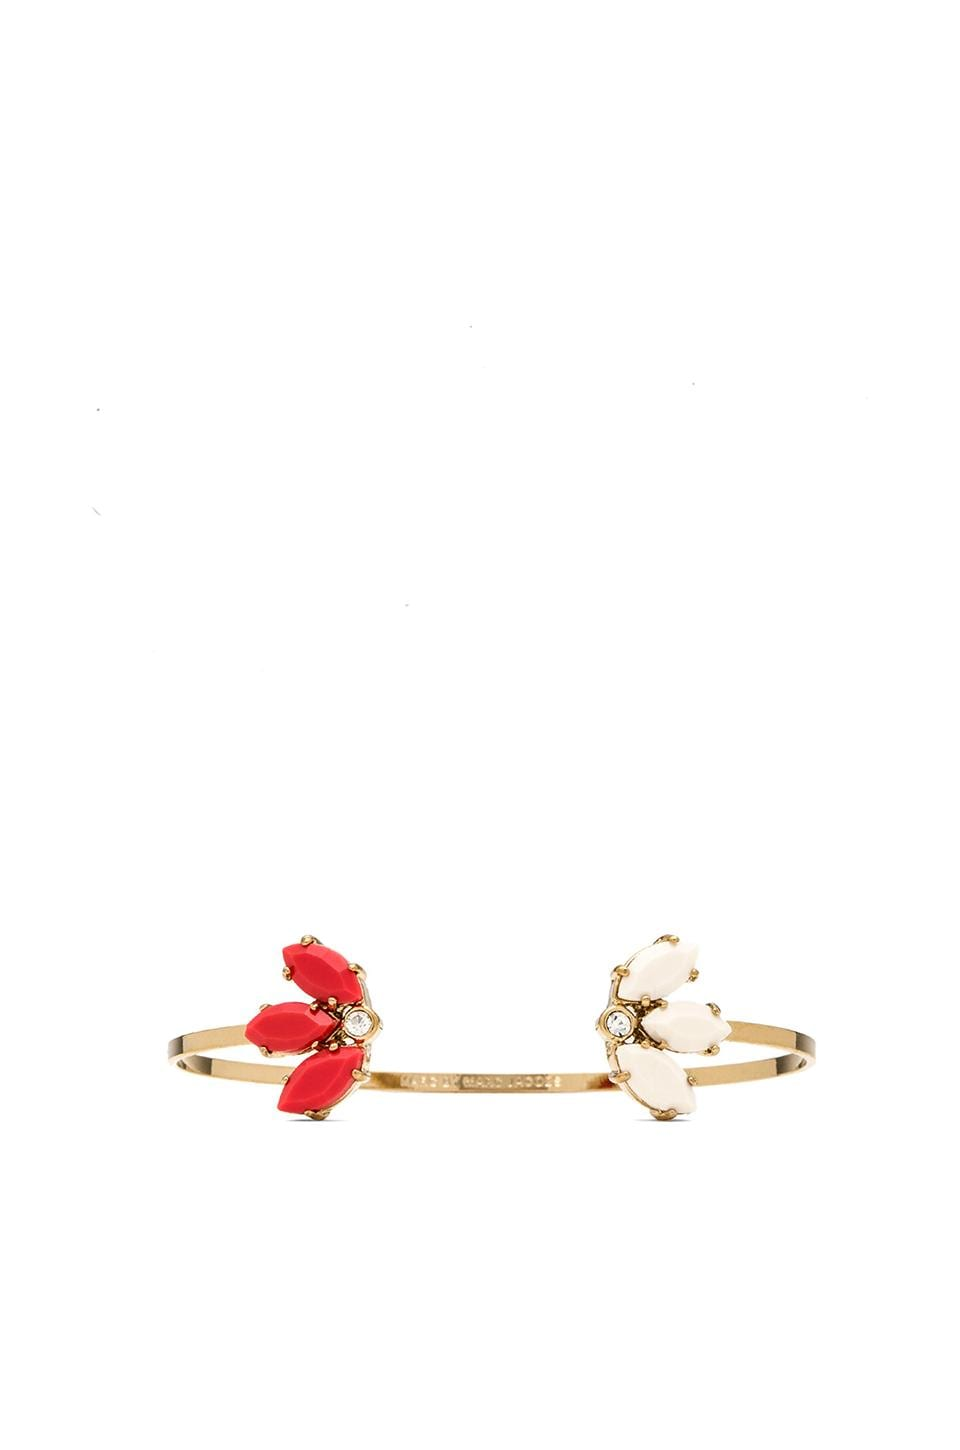 Marc by Marc Jacobs Read My Palmz Marquis Palm Bangle in Infrared Multi & Oro